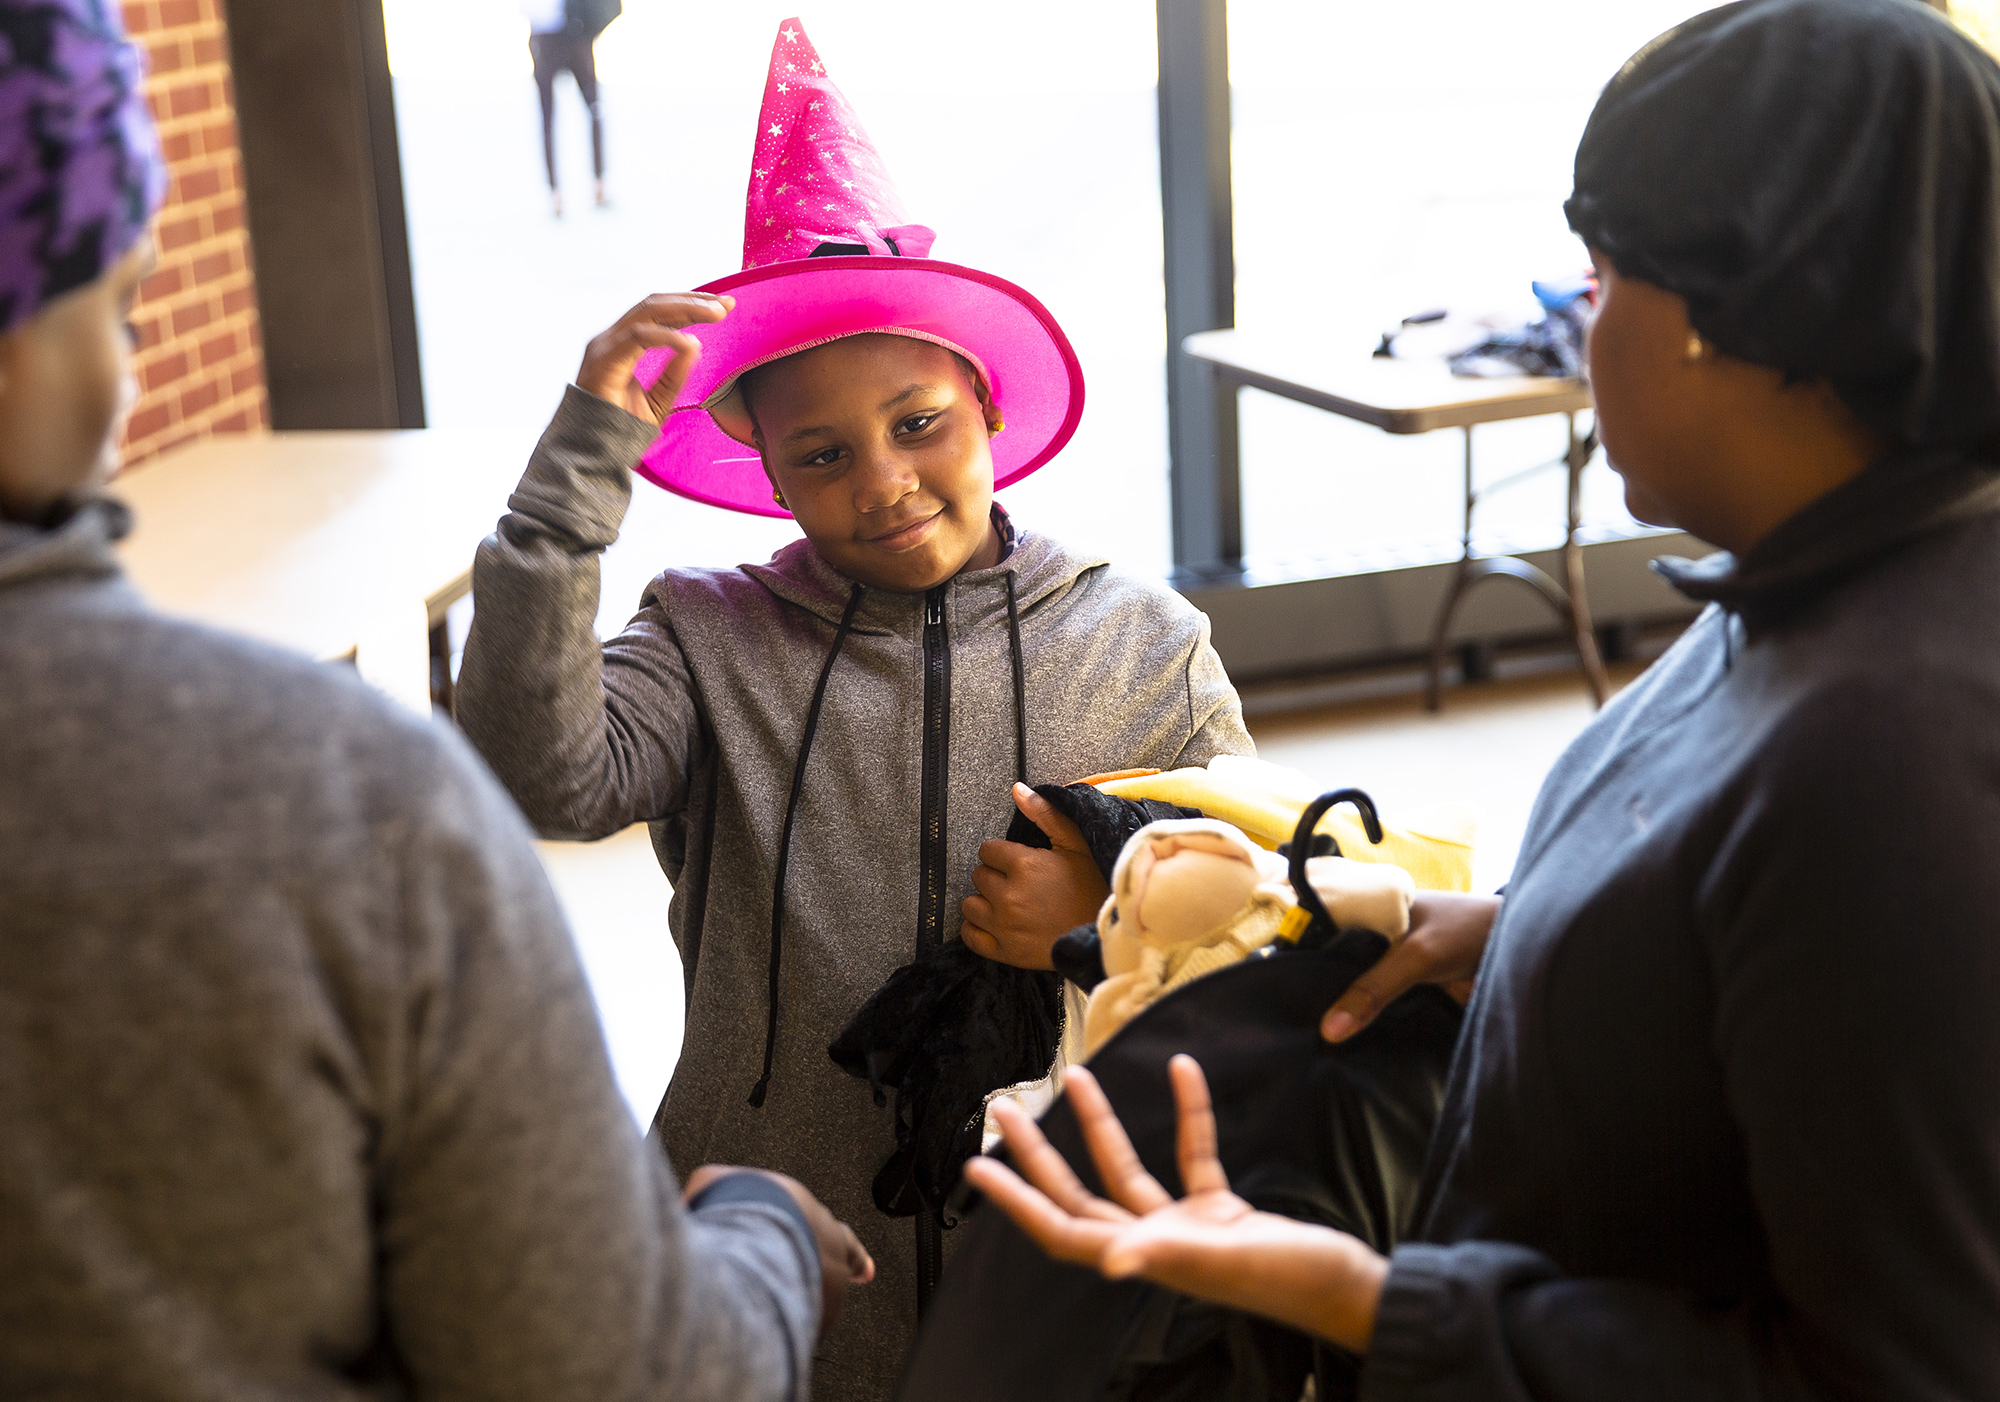 Akeria Scott, 9, tries on a witches hat for size during the Boutique Halloween costume giveaway Saturday, Oct. 20, 2018 in the Lincolns Commons at Lincoln Land Community College in Springfield, Ill. [Rich Saal/The State Journal-Register]